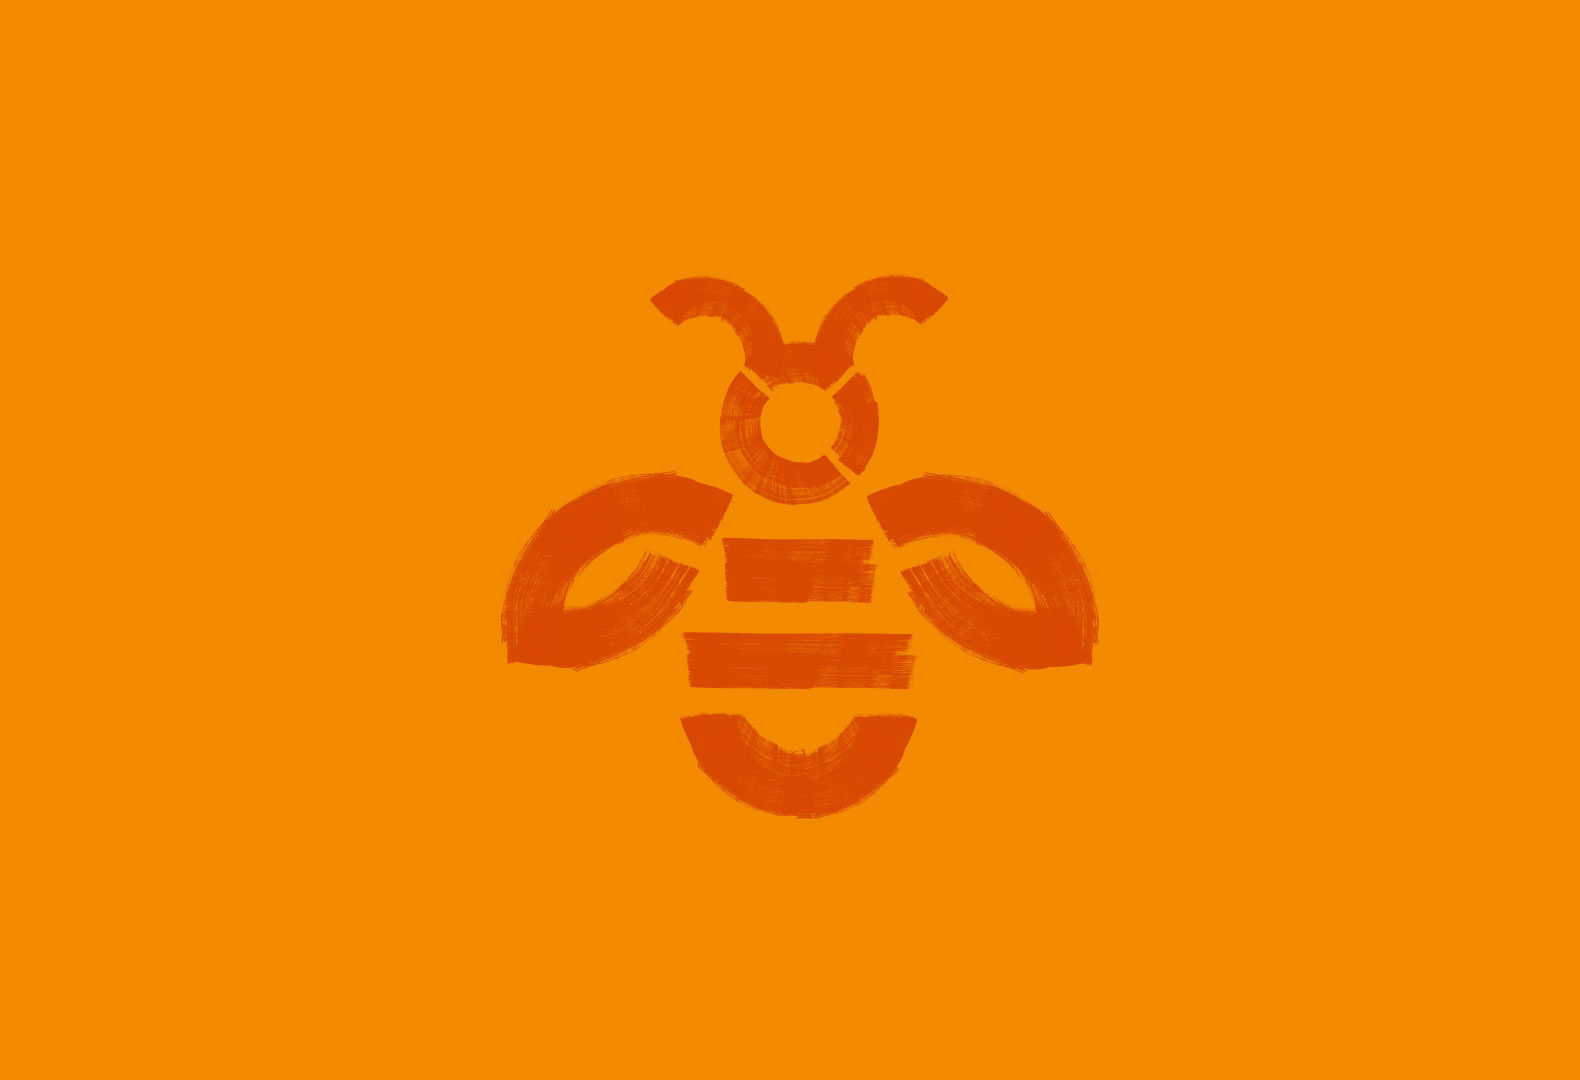 Abstract illustrated bee for the Global Generation branding.